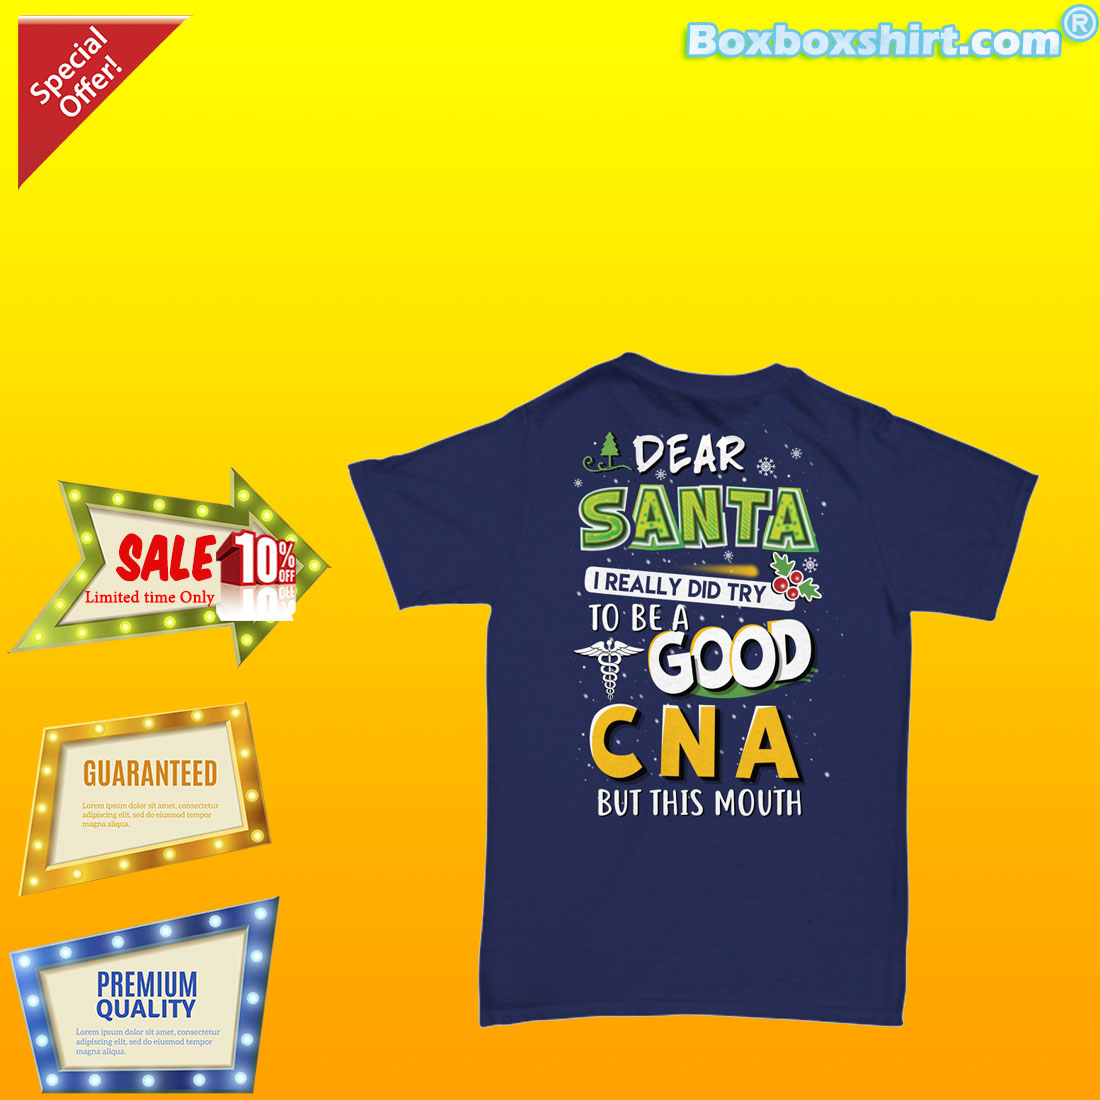 Dear santa I really did try to be a good CNA but this mouth shirt